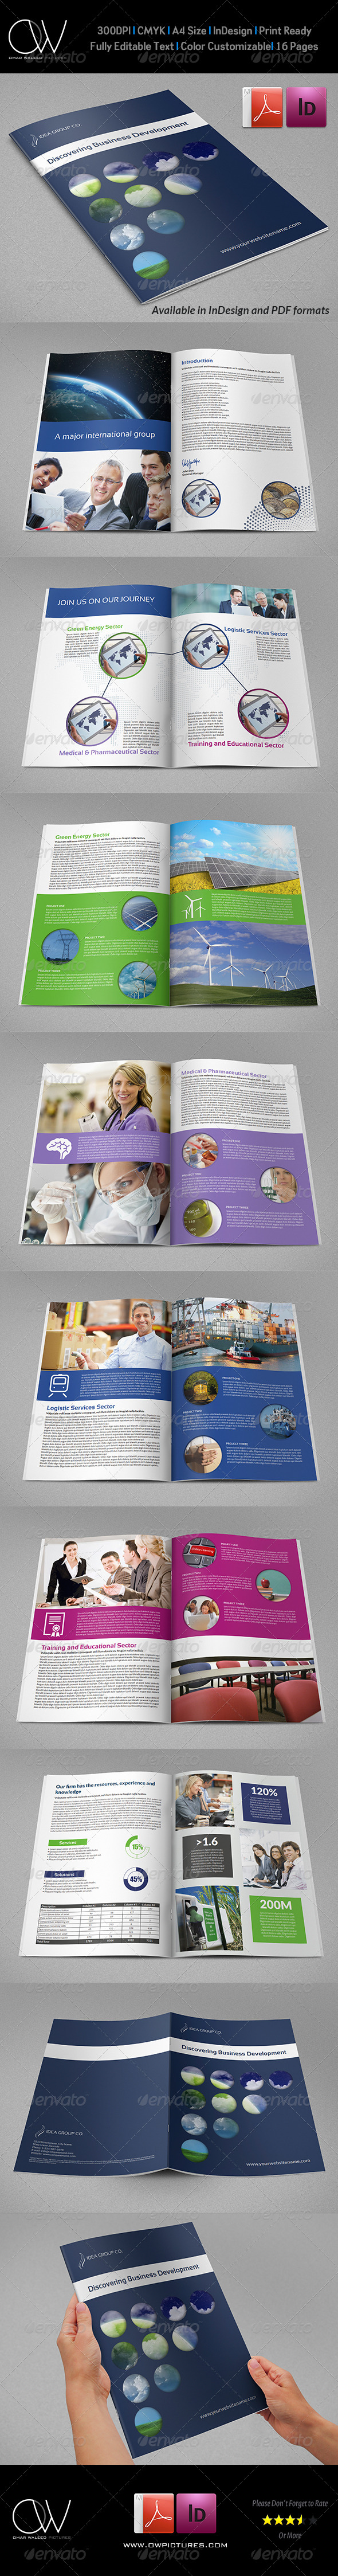 GraphicRiver Corporate Brochure Template Vol.33 16 Pages 7281253